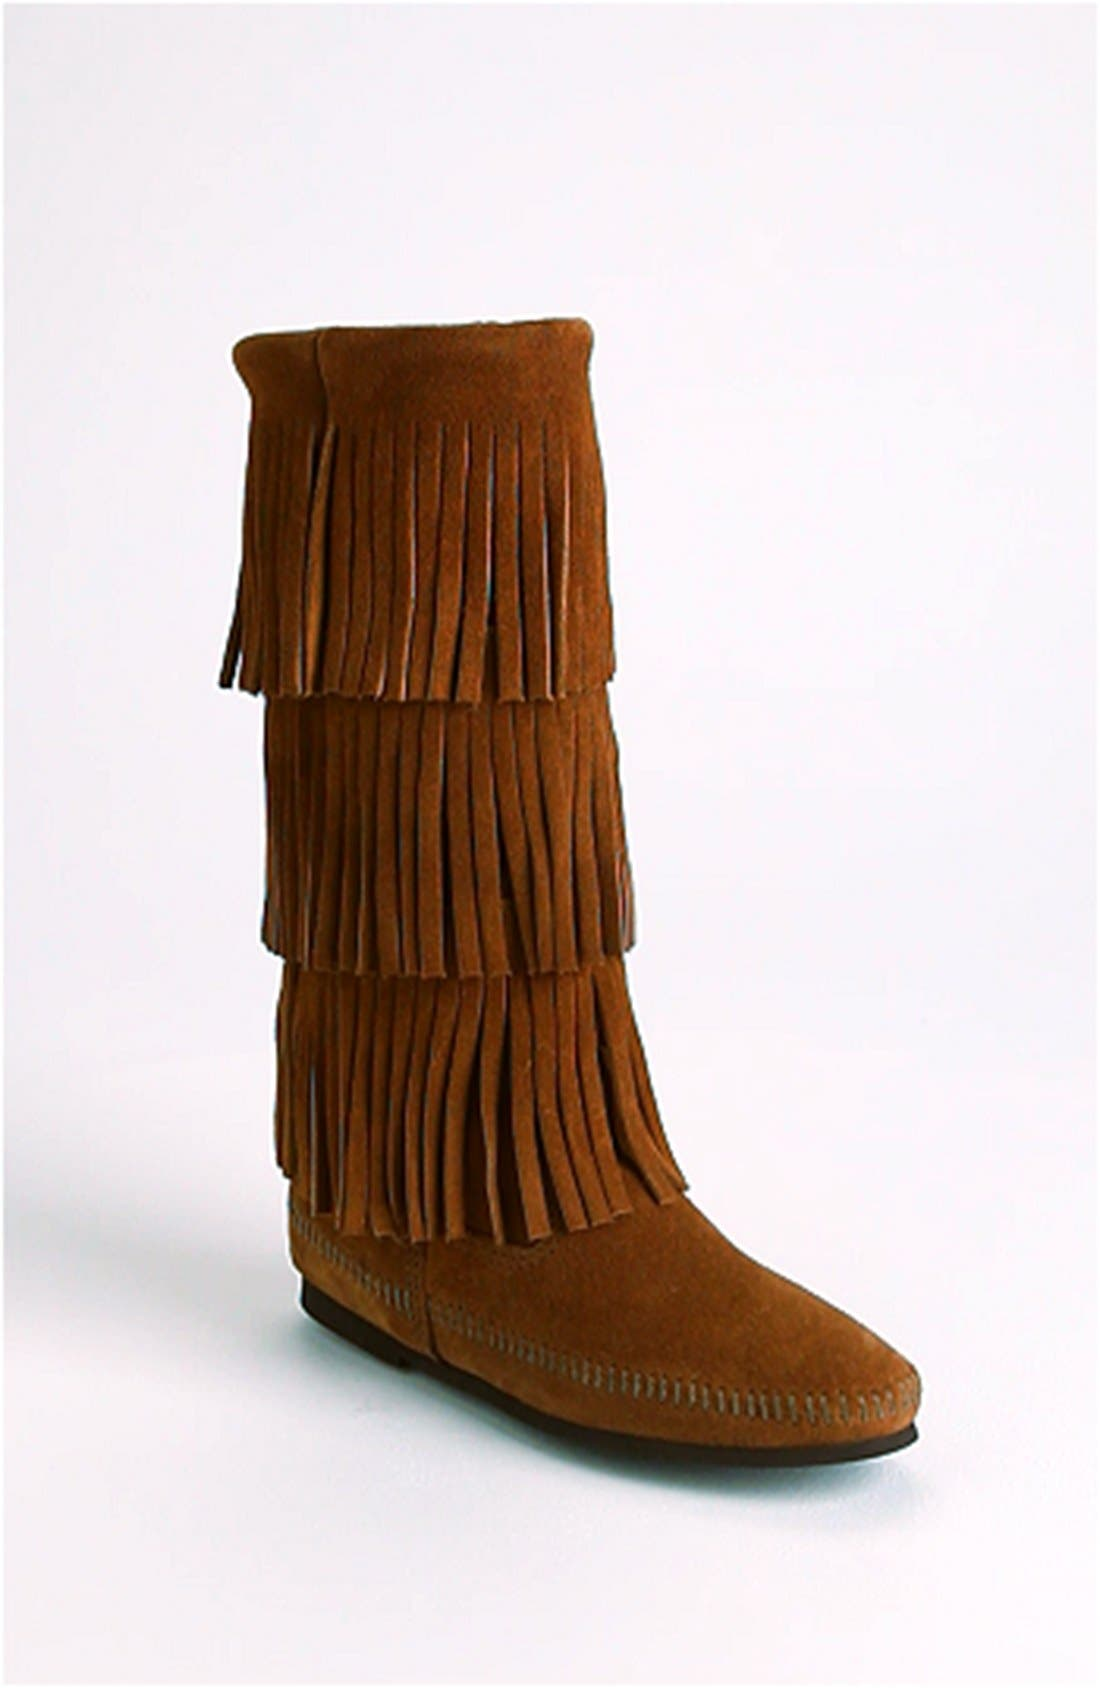 3-Layer Fringe Boot,                             Alternate thumbnail 2, color,                             BROWN SUEDE